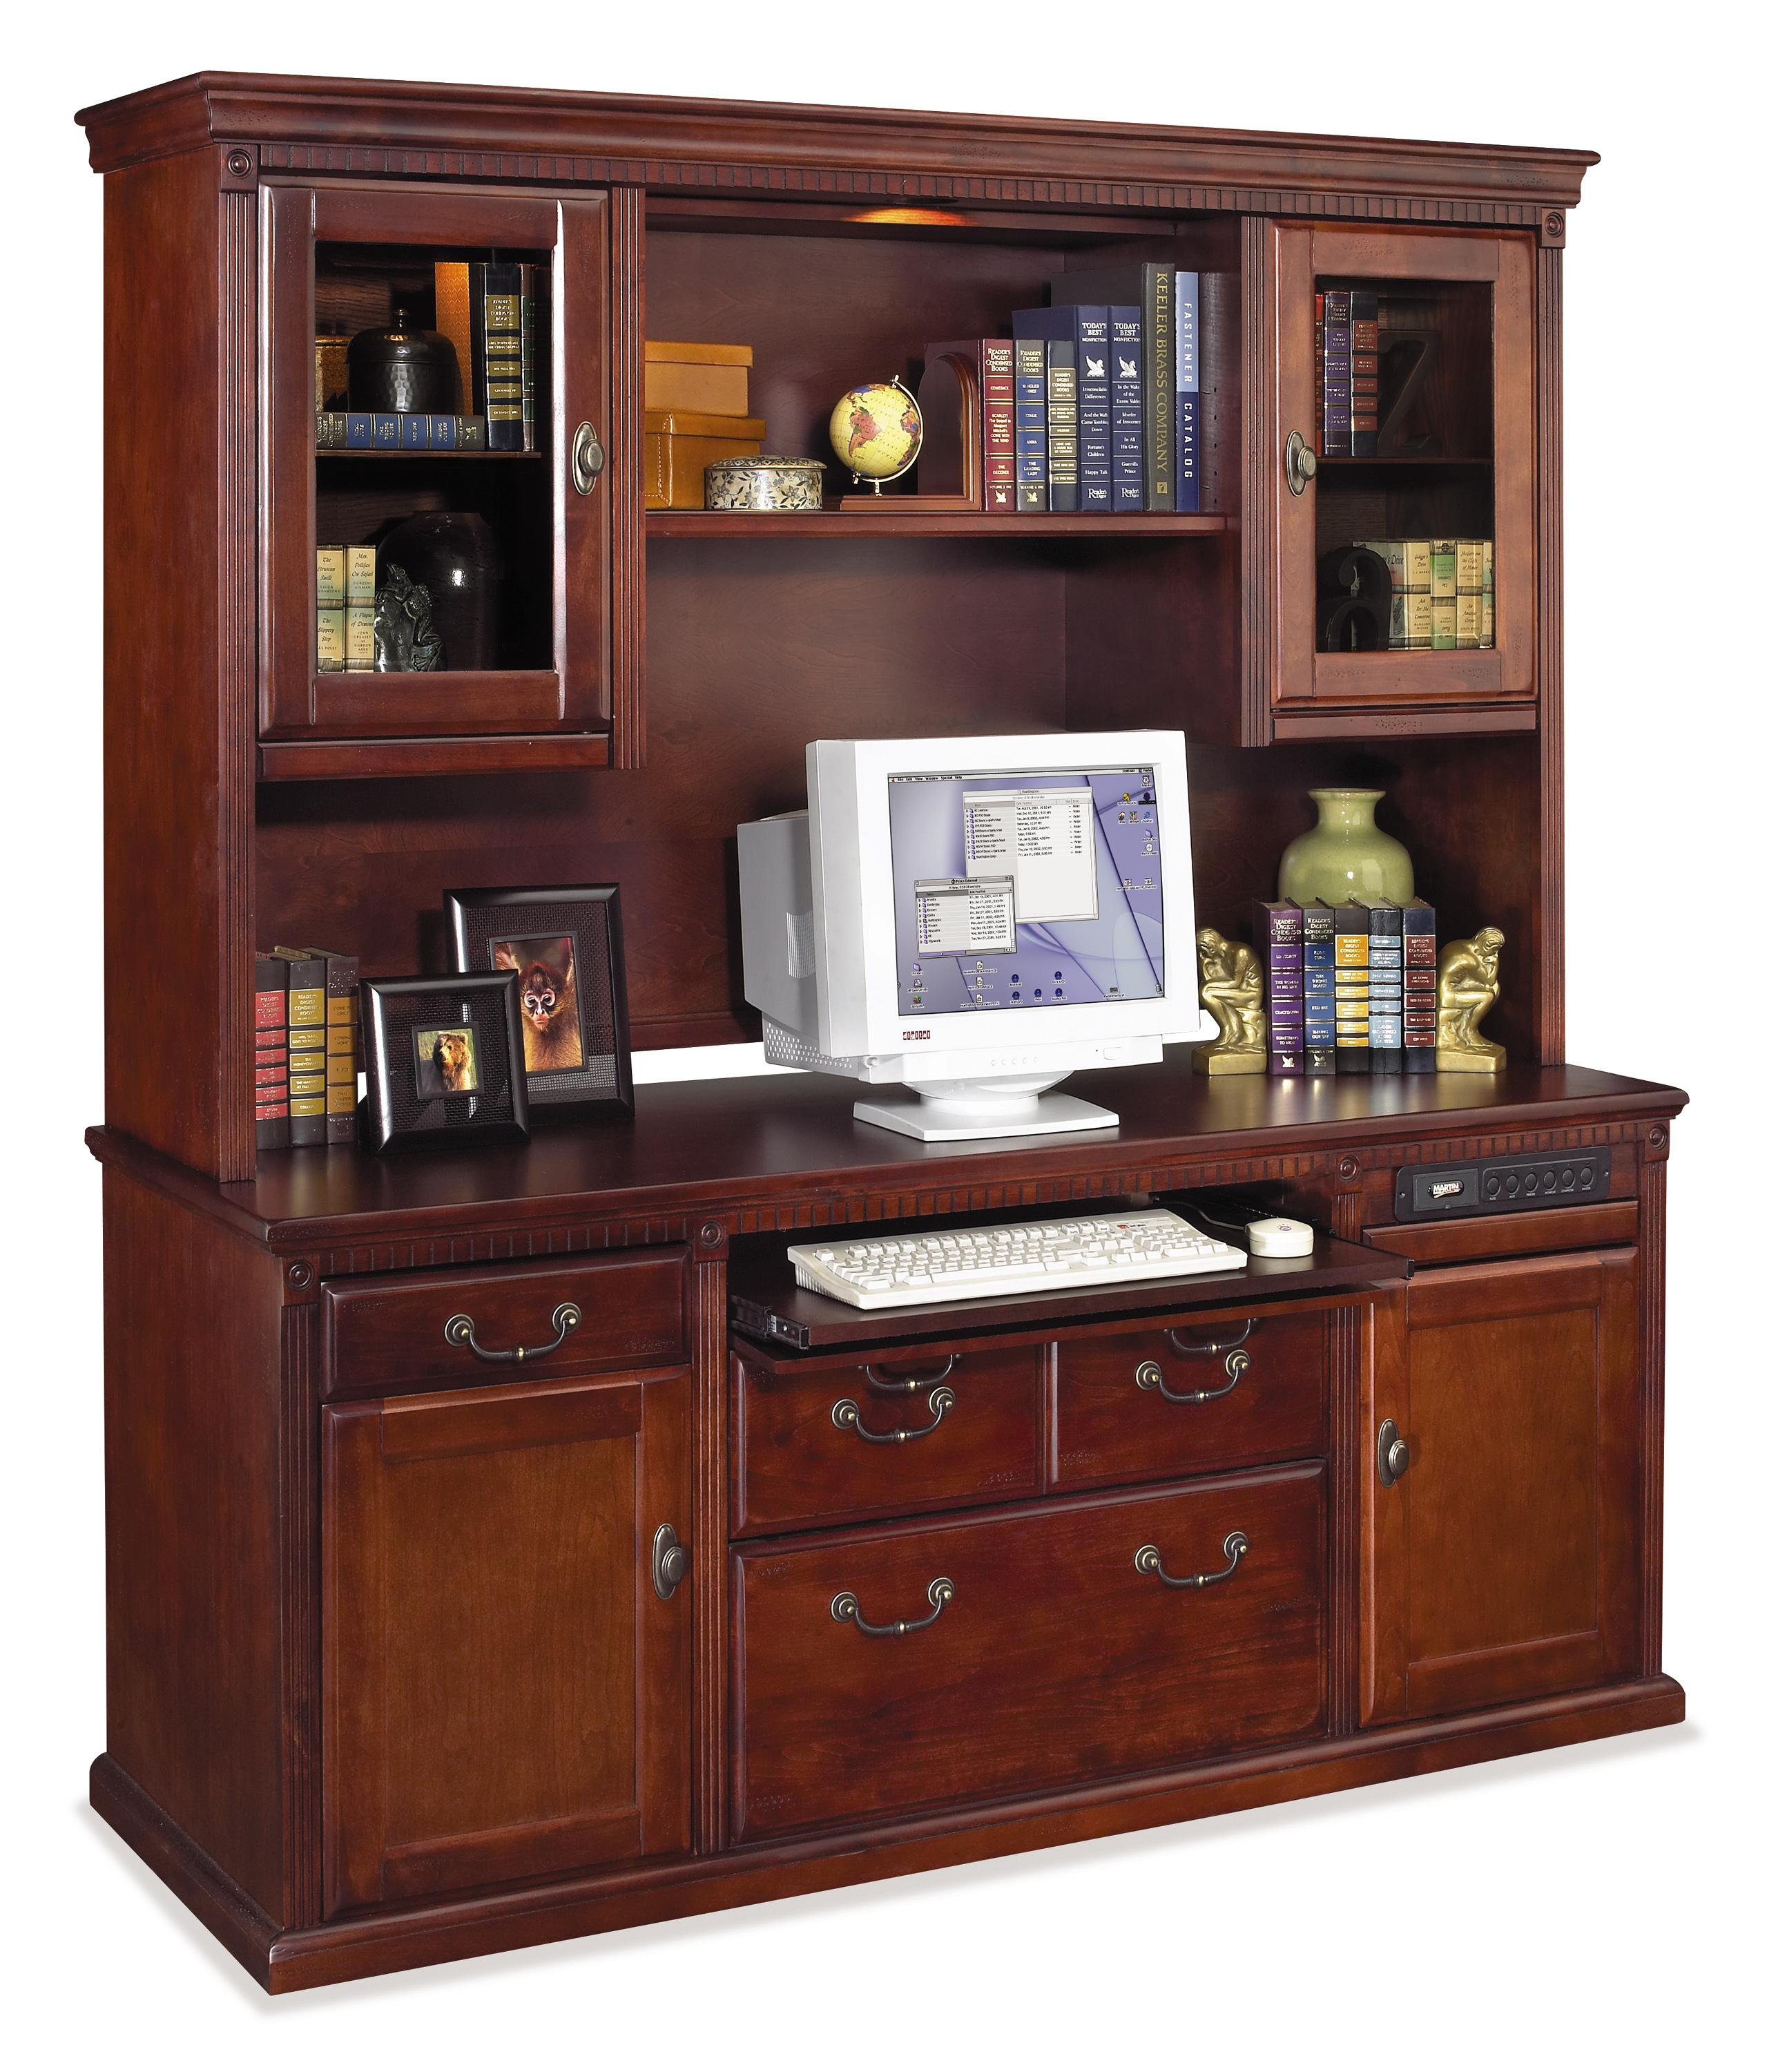 kathy ireland Home by Martin Huntington Club Credenza and Hutch w/ Pull-Out Storage Light - Item Number: HCR682+HCR687